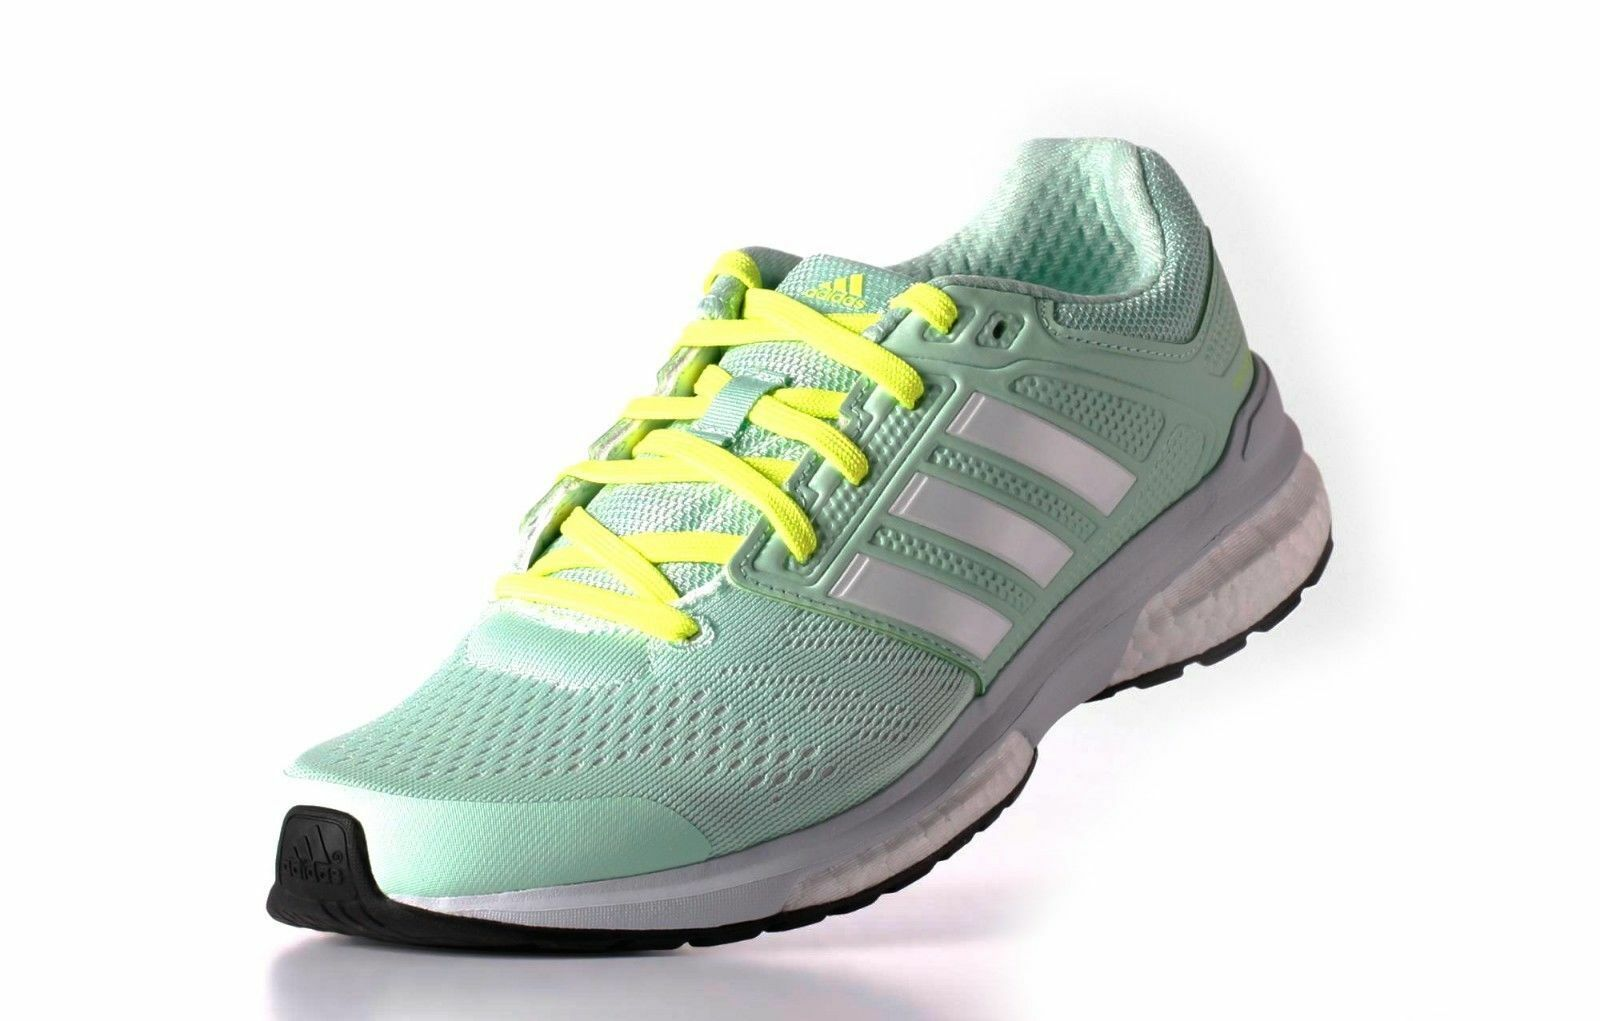 ADIDAS LADIES REVENGE BOOST 2 TRAINERS b22926 SIZE